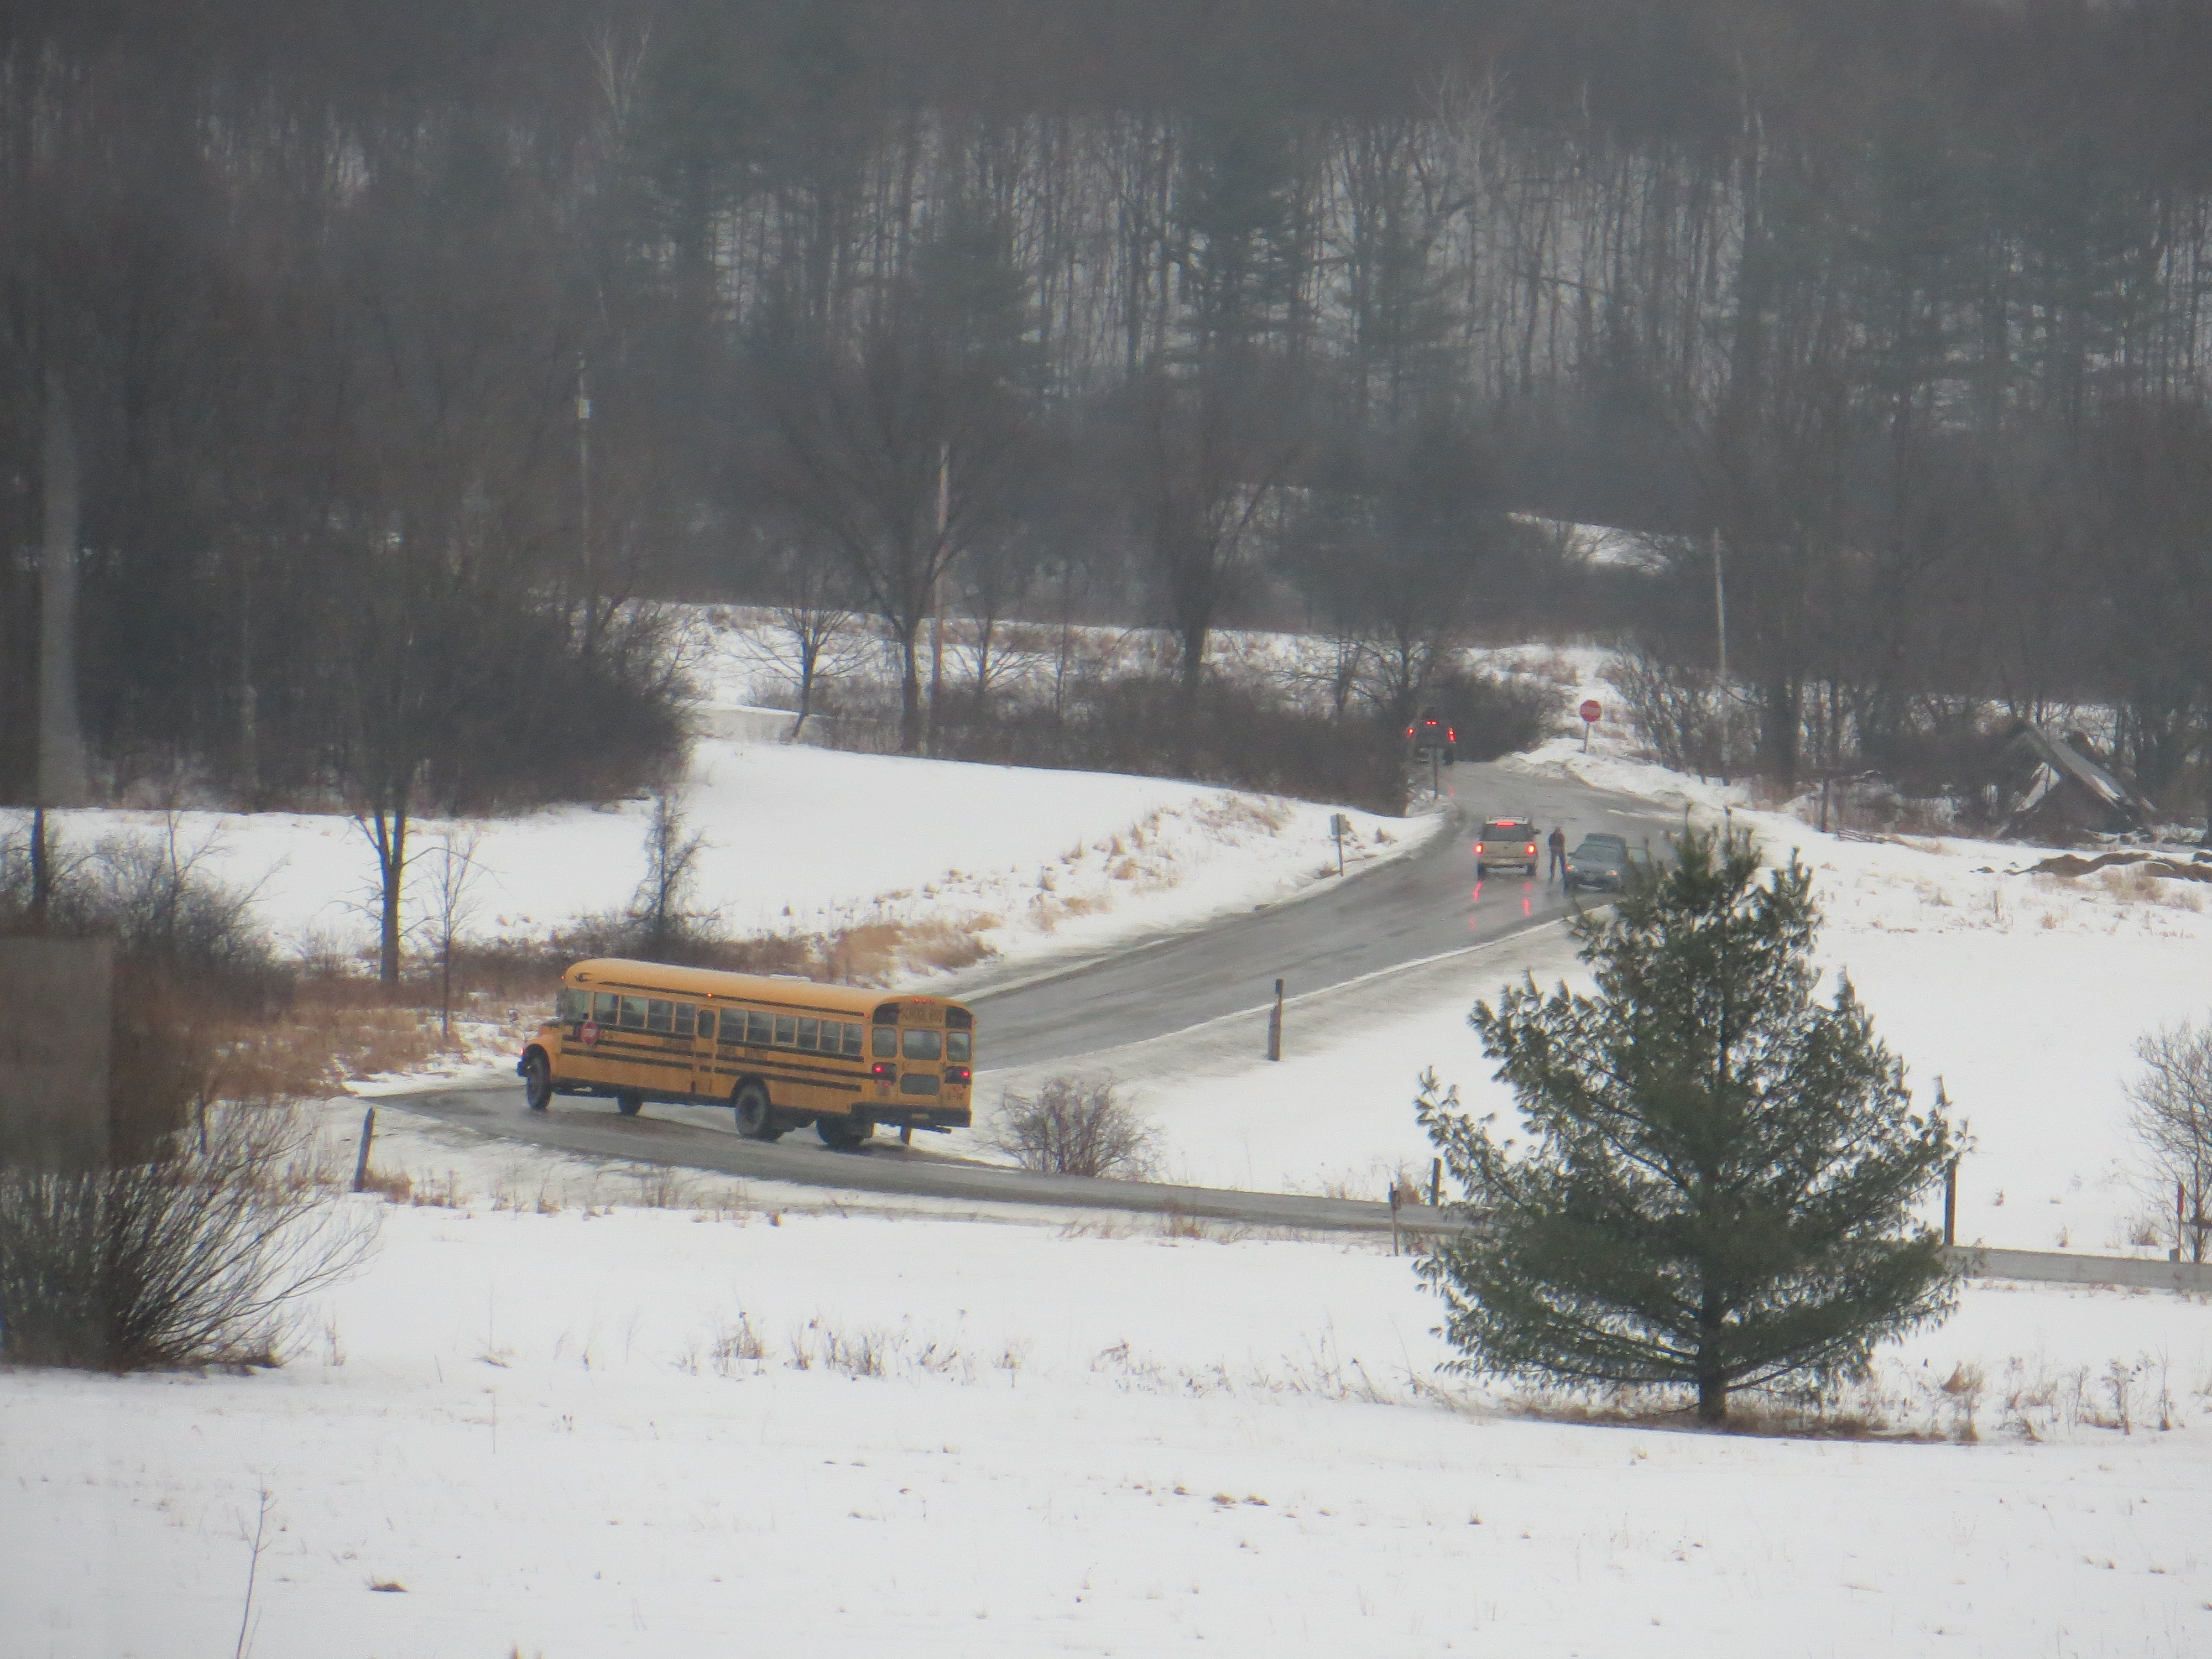 Bus on the Icy Road